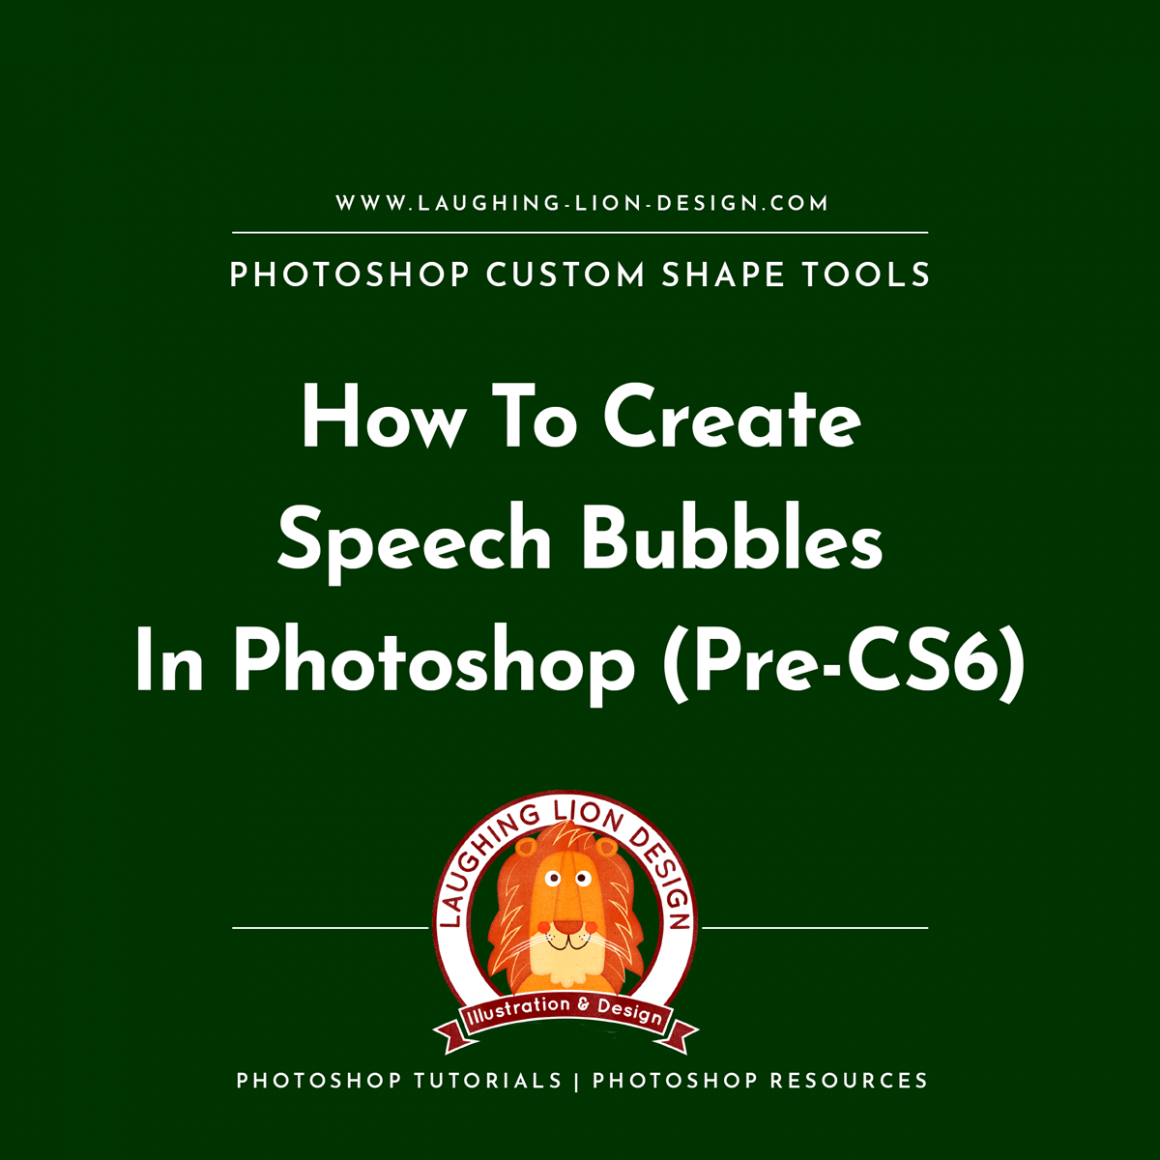 How-To-Make-Speech-Bubbles-In-Photoshop-With-Custom-Shape-Tools-Pre-CS6